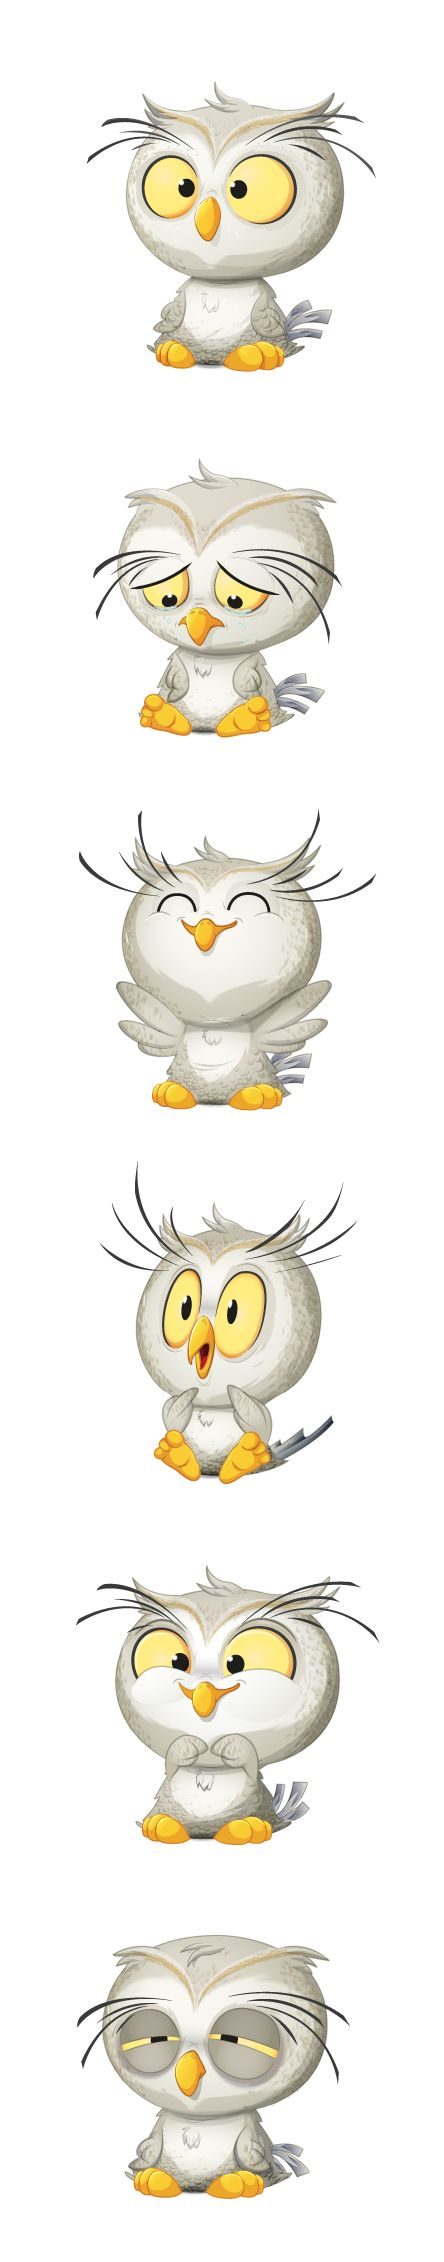 Baby owl stickers by Agustin Grassi